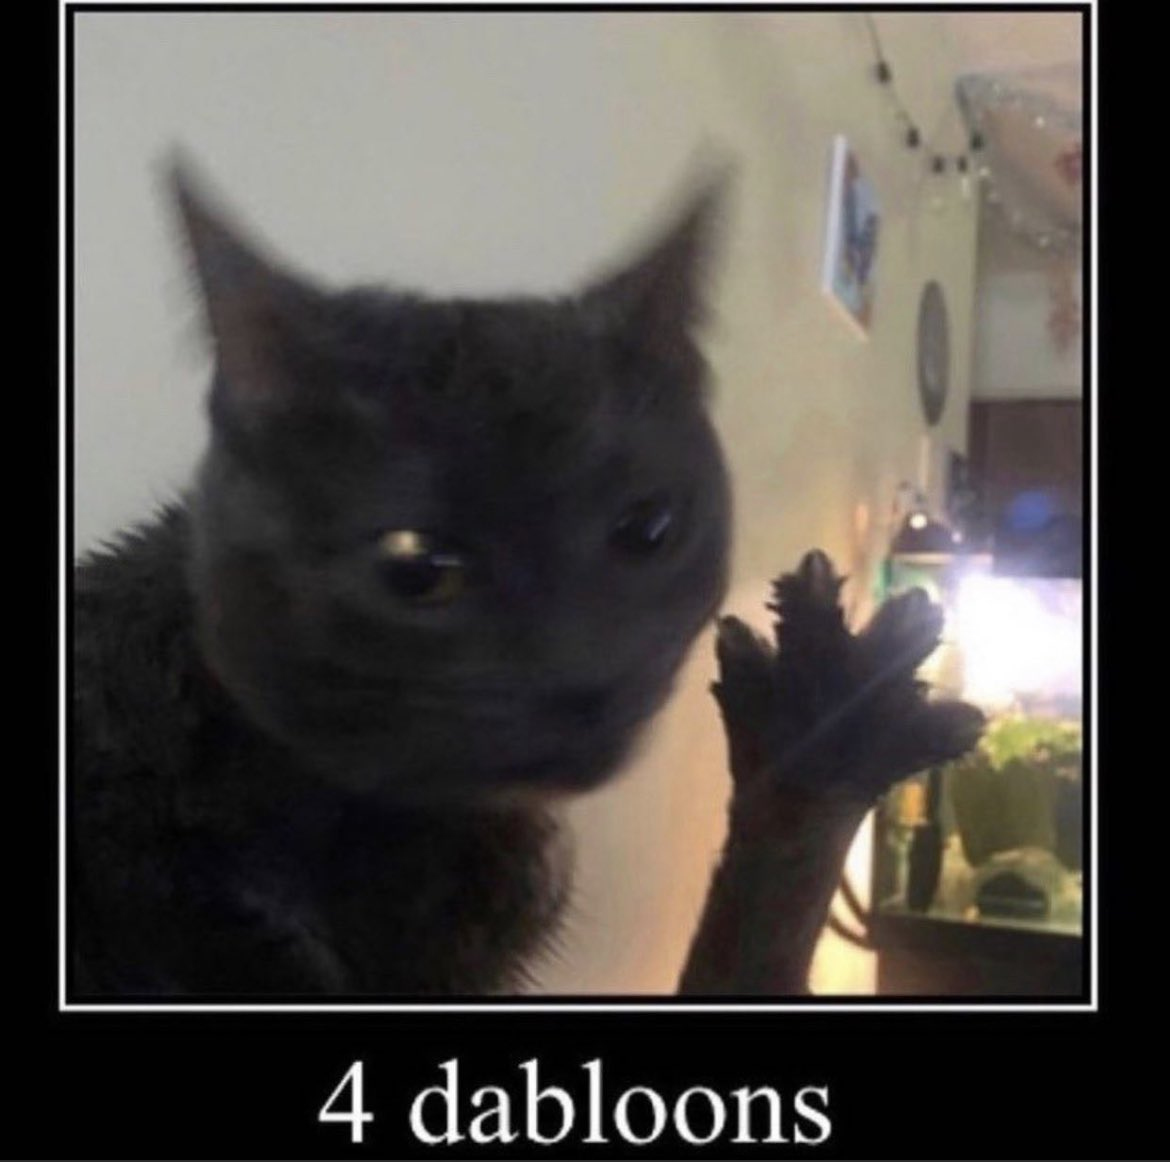 4 dabloons